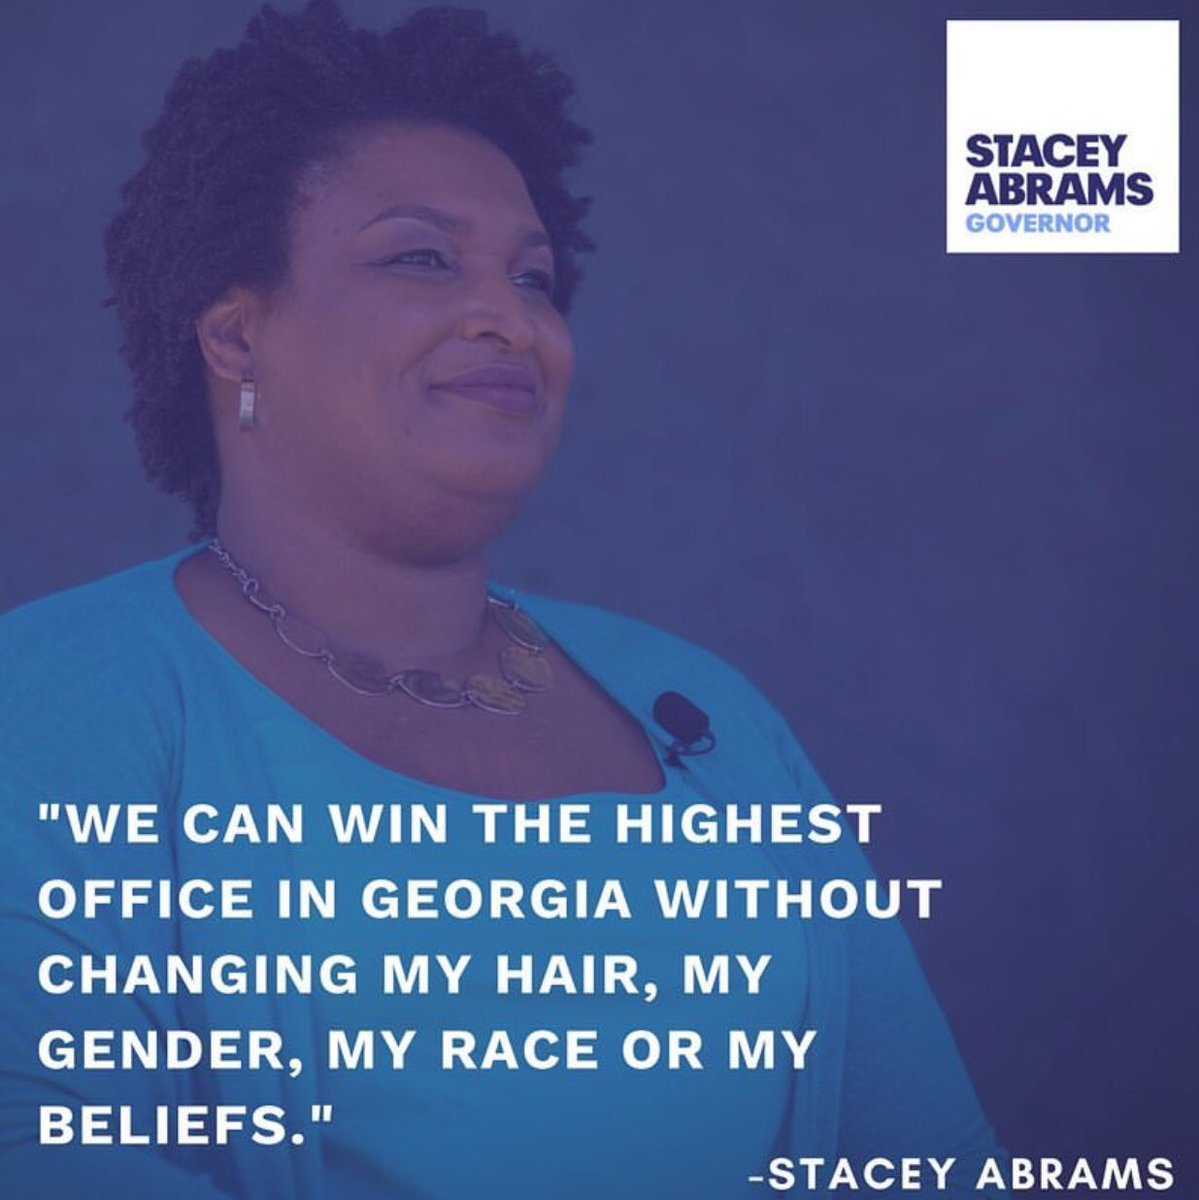 I proudly support Stacey Abrams, a Governor for all of Georgia.